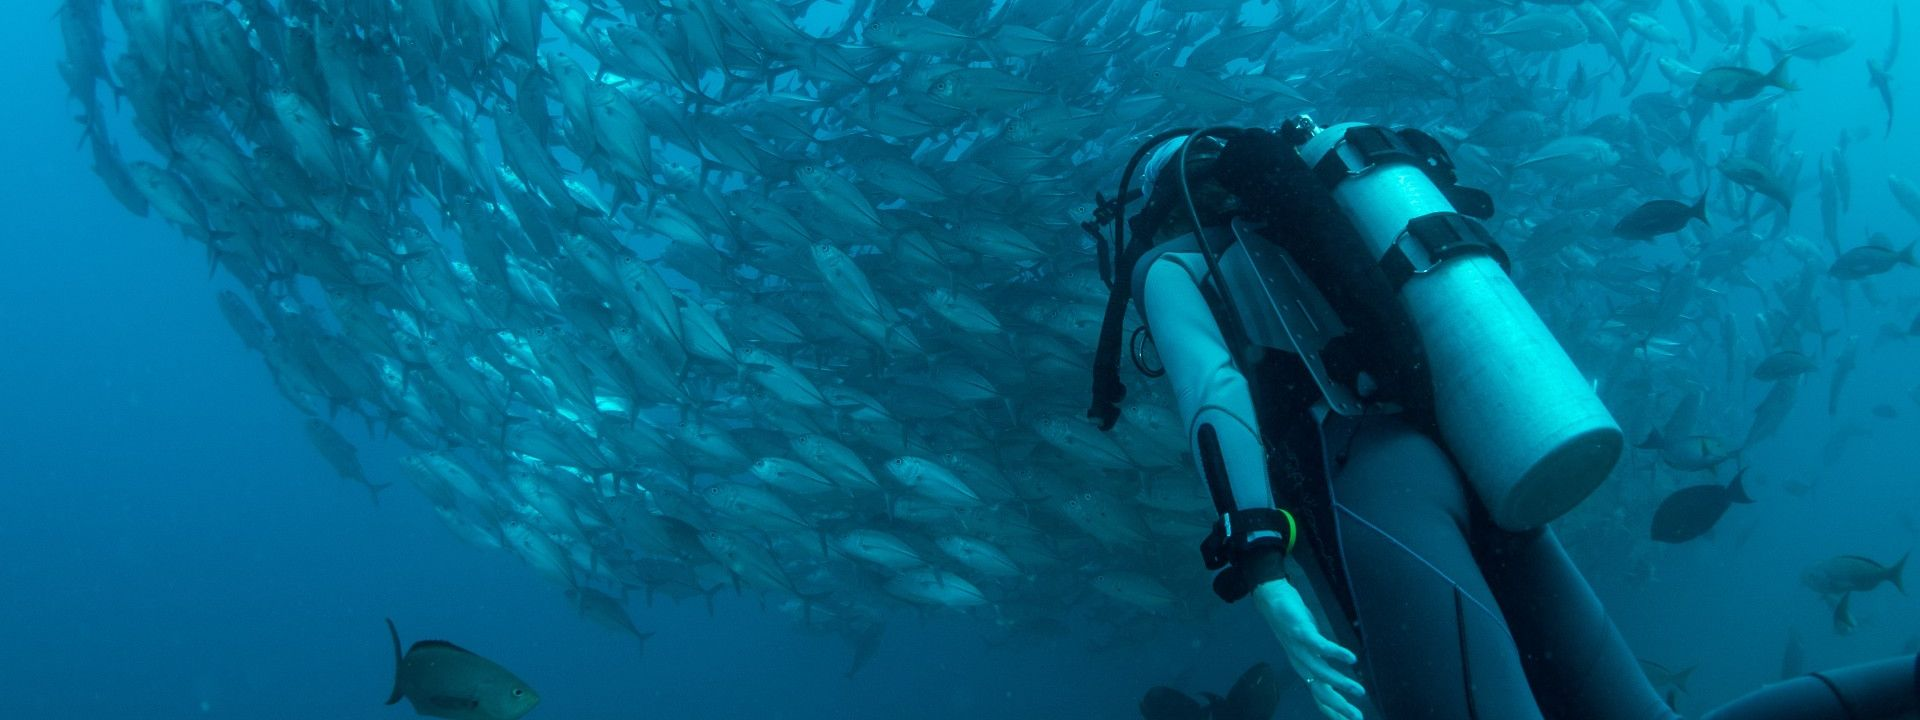 Scubadiving with respect to marine life